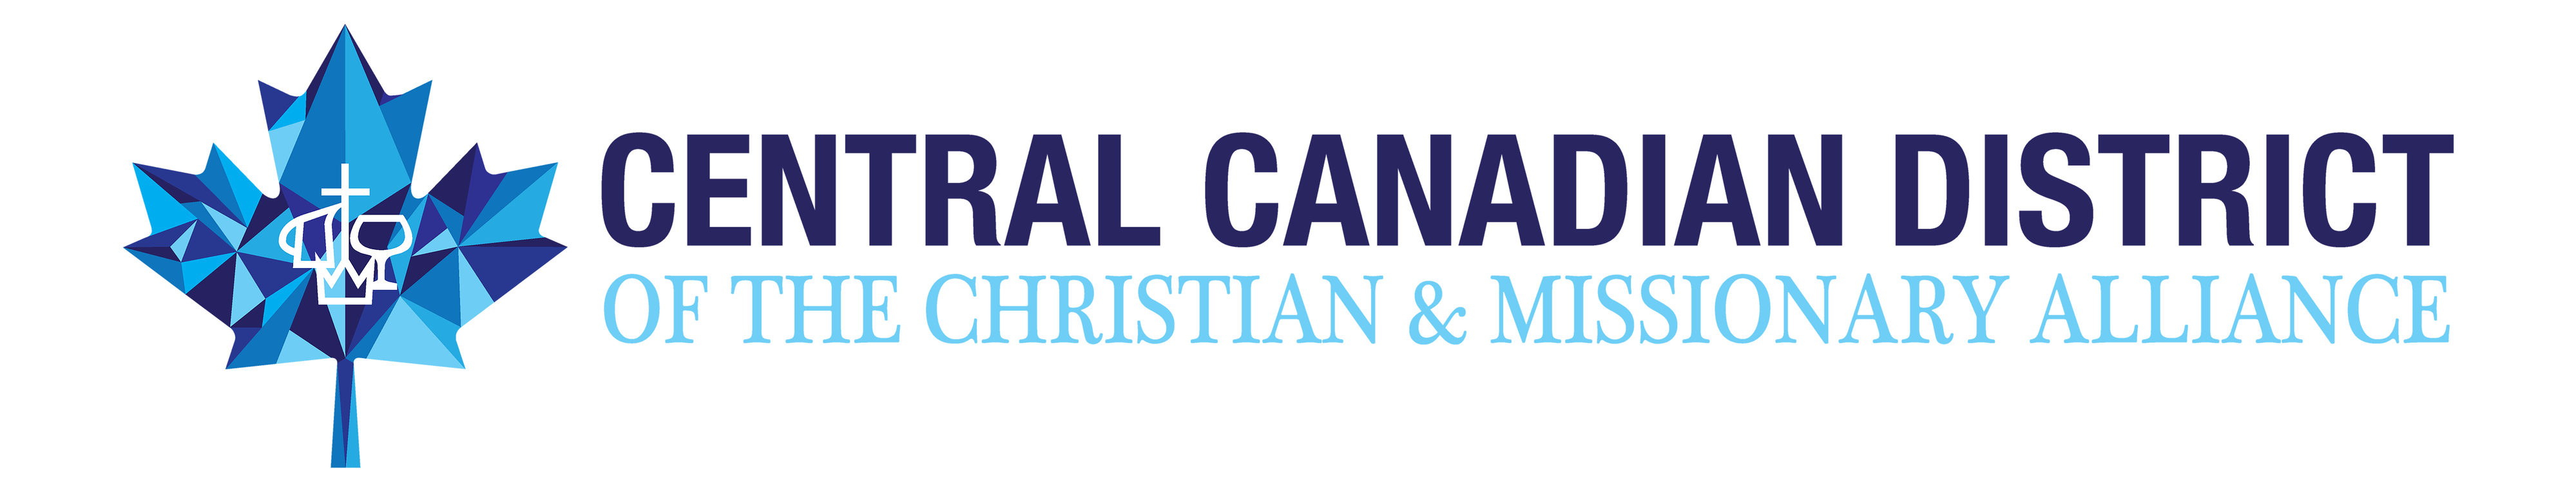 Christian and Missionary Alliance Canada-Central District